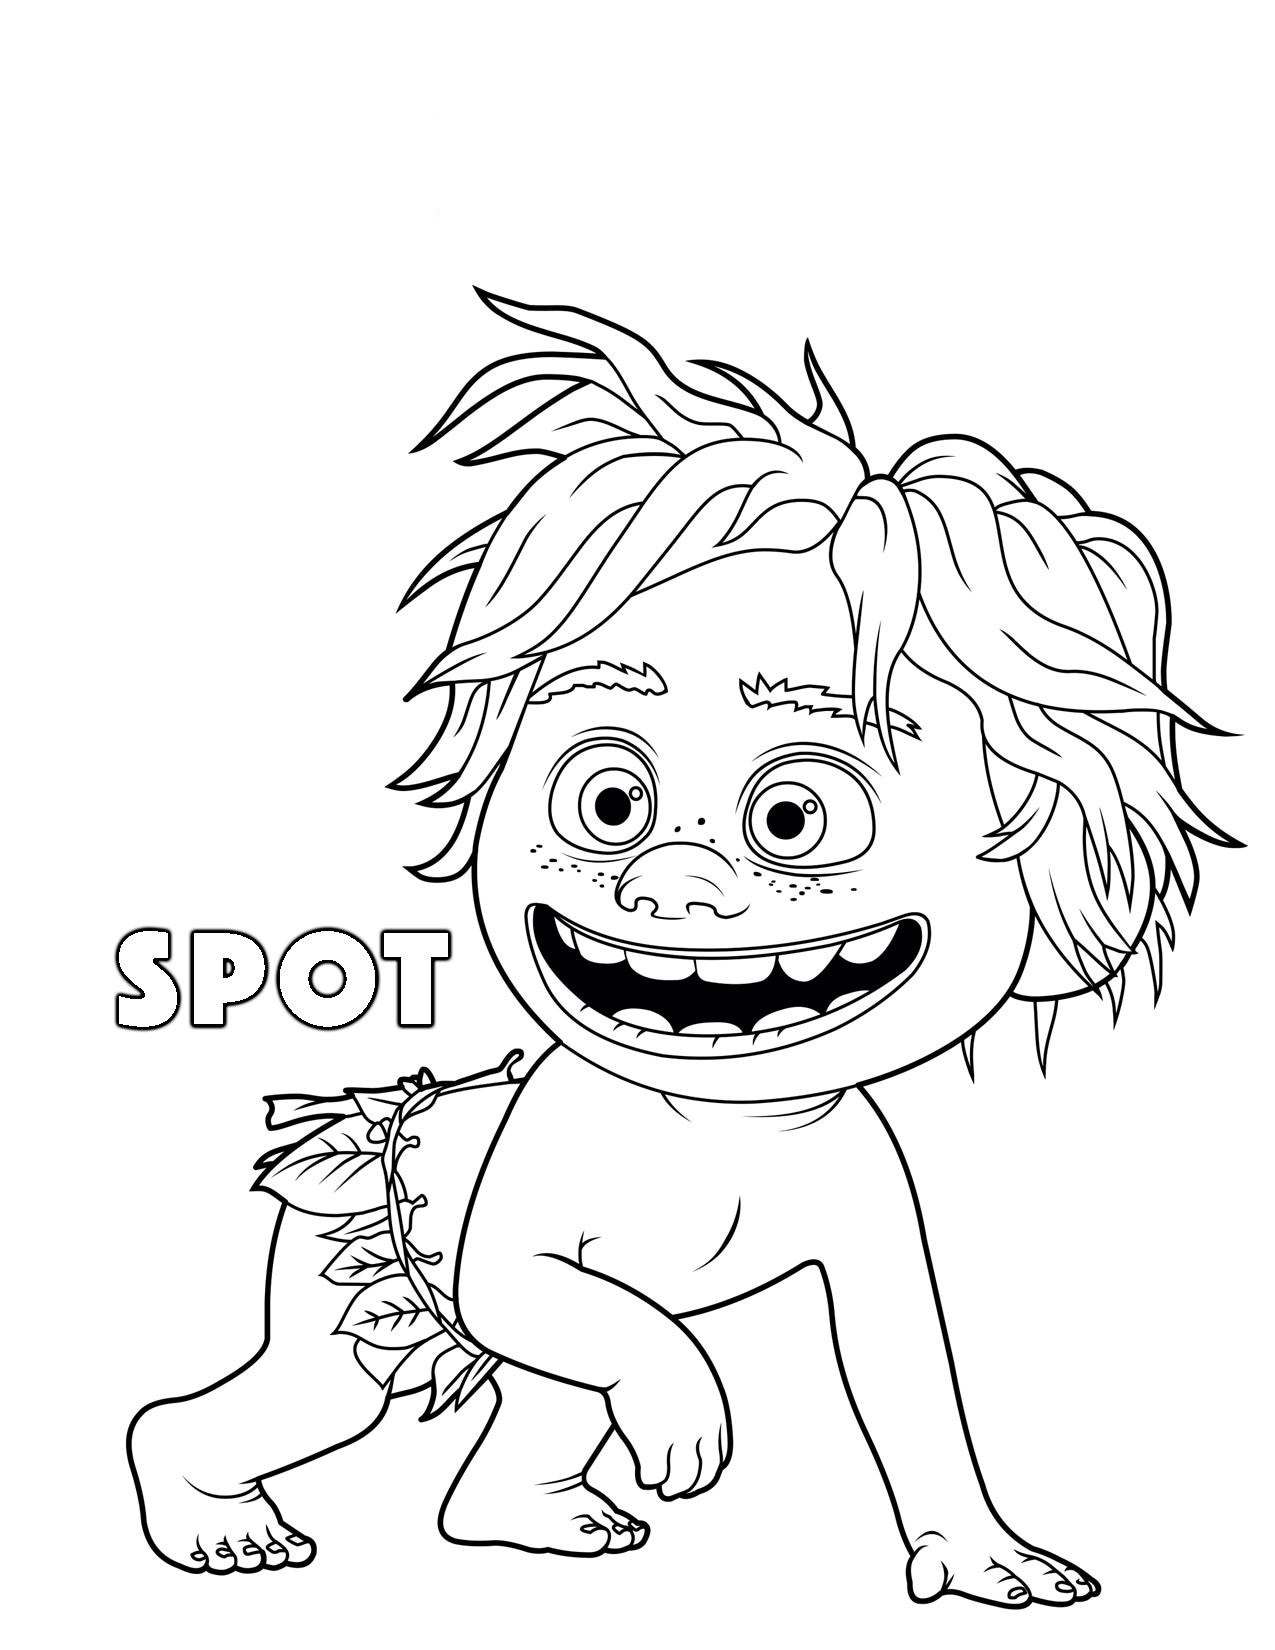 1275x1650 The Good Dinosaur Spot Coloring Pages